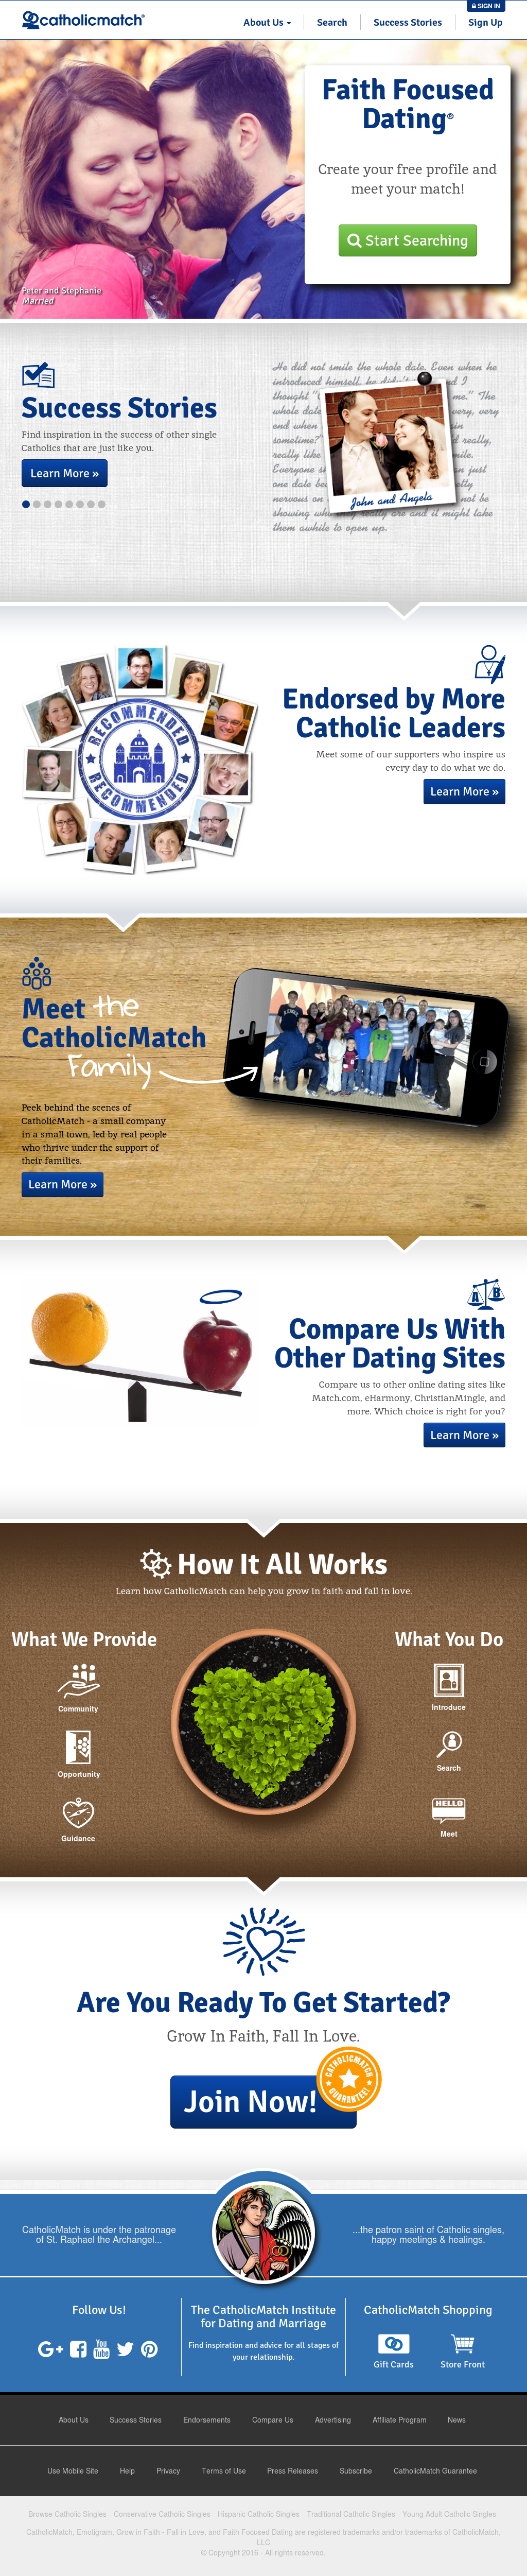 Catholicmatch sign in